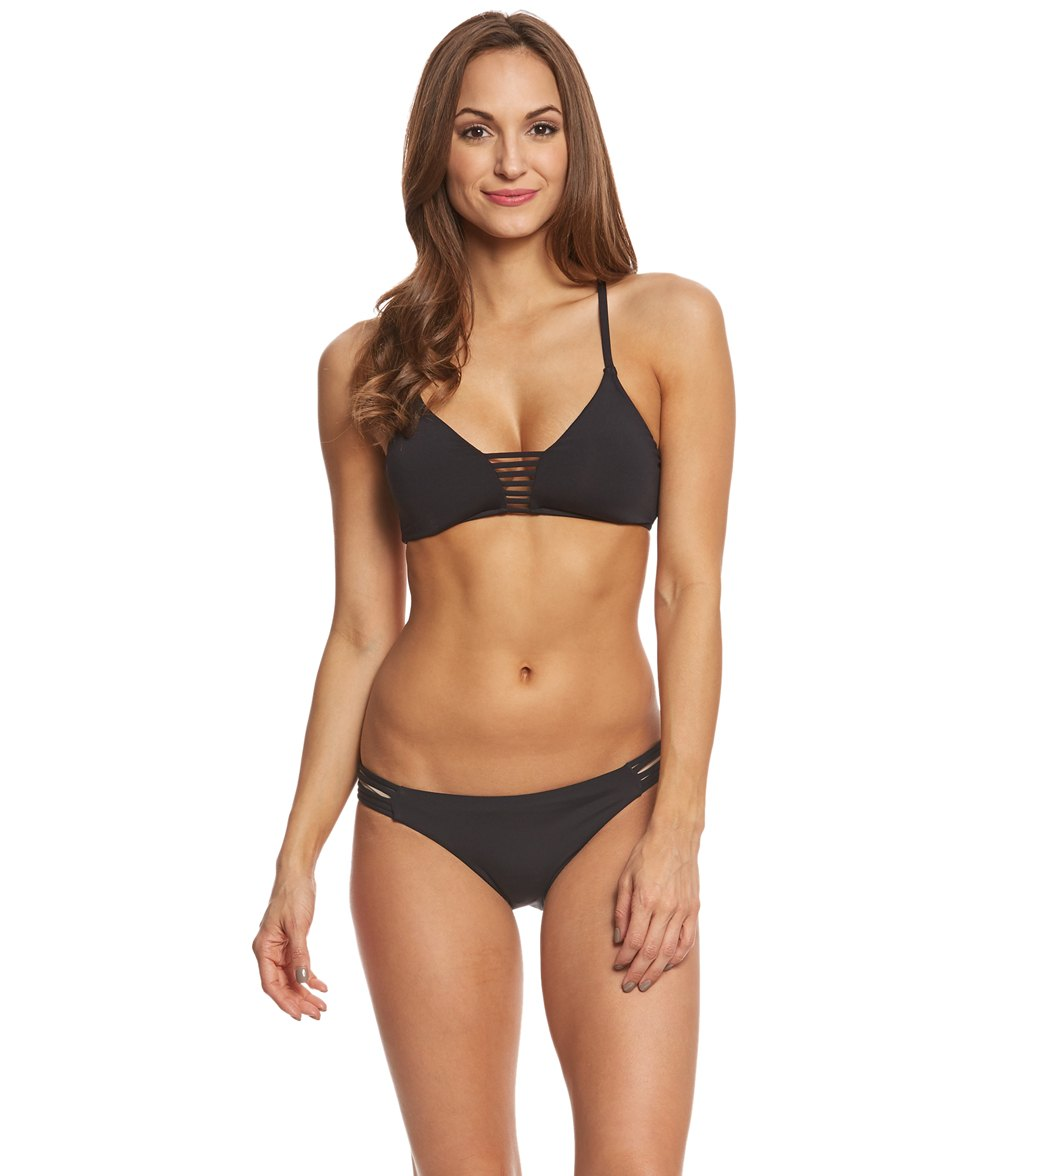 cc7f382c84 Seafolly Active Rouleau Bralette Bikini Top at SwimOutlet.com - Free ...